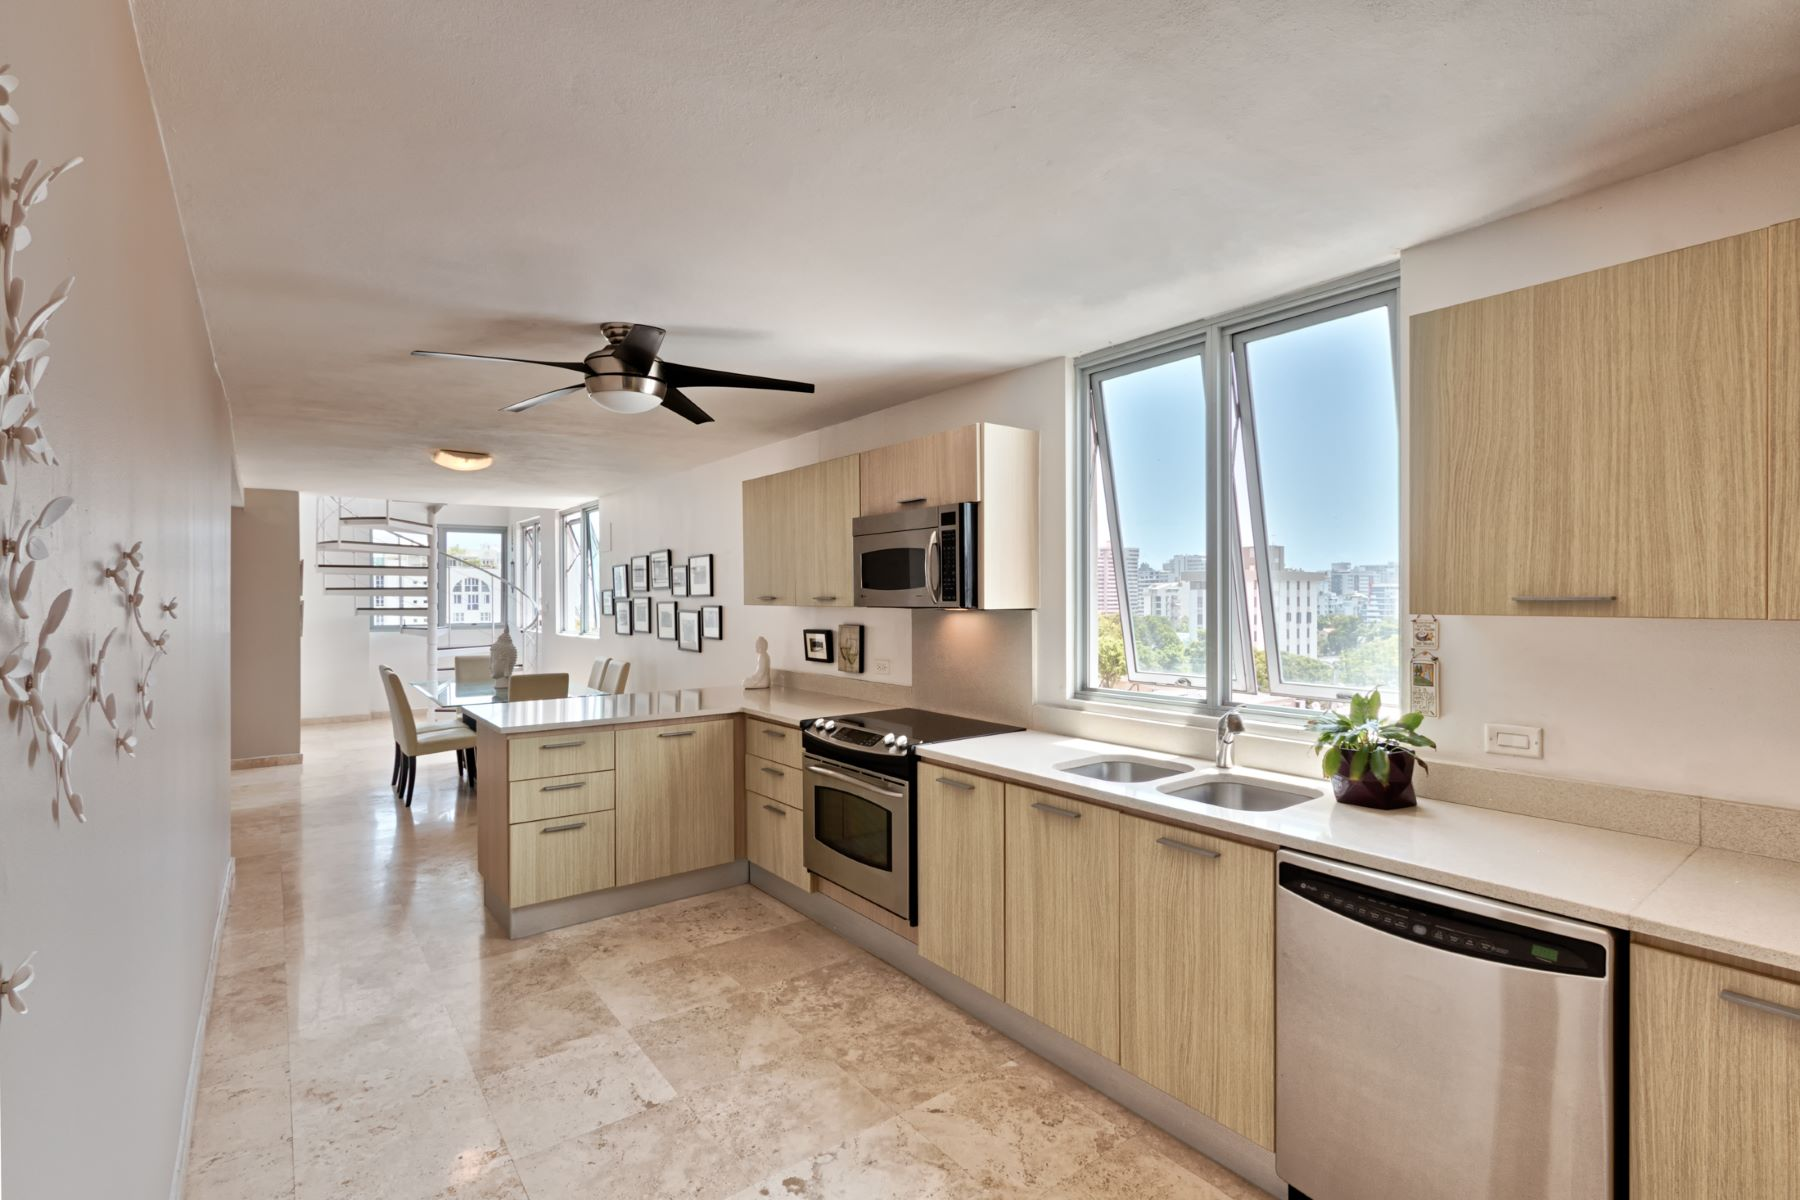 Additional photo for property listing at Costa Condado Penthouse 1420 Wilson Street Apt. 801 San Juan, Puerto Rico 00907 푸에르토리코